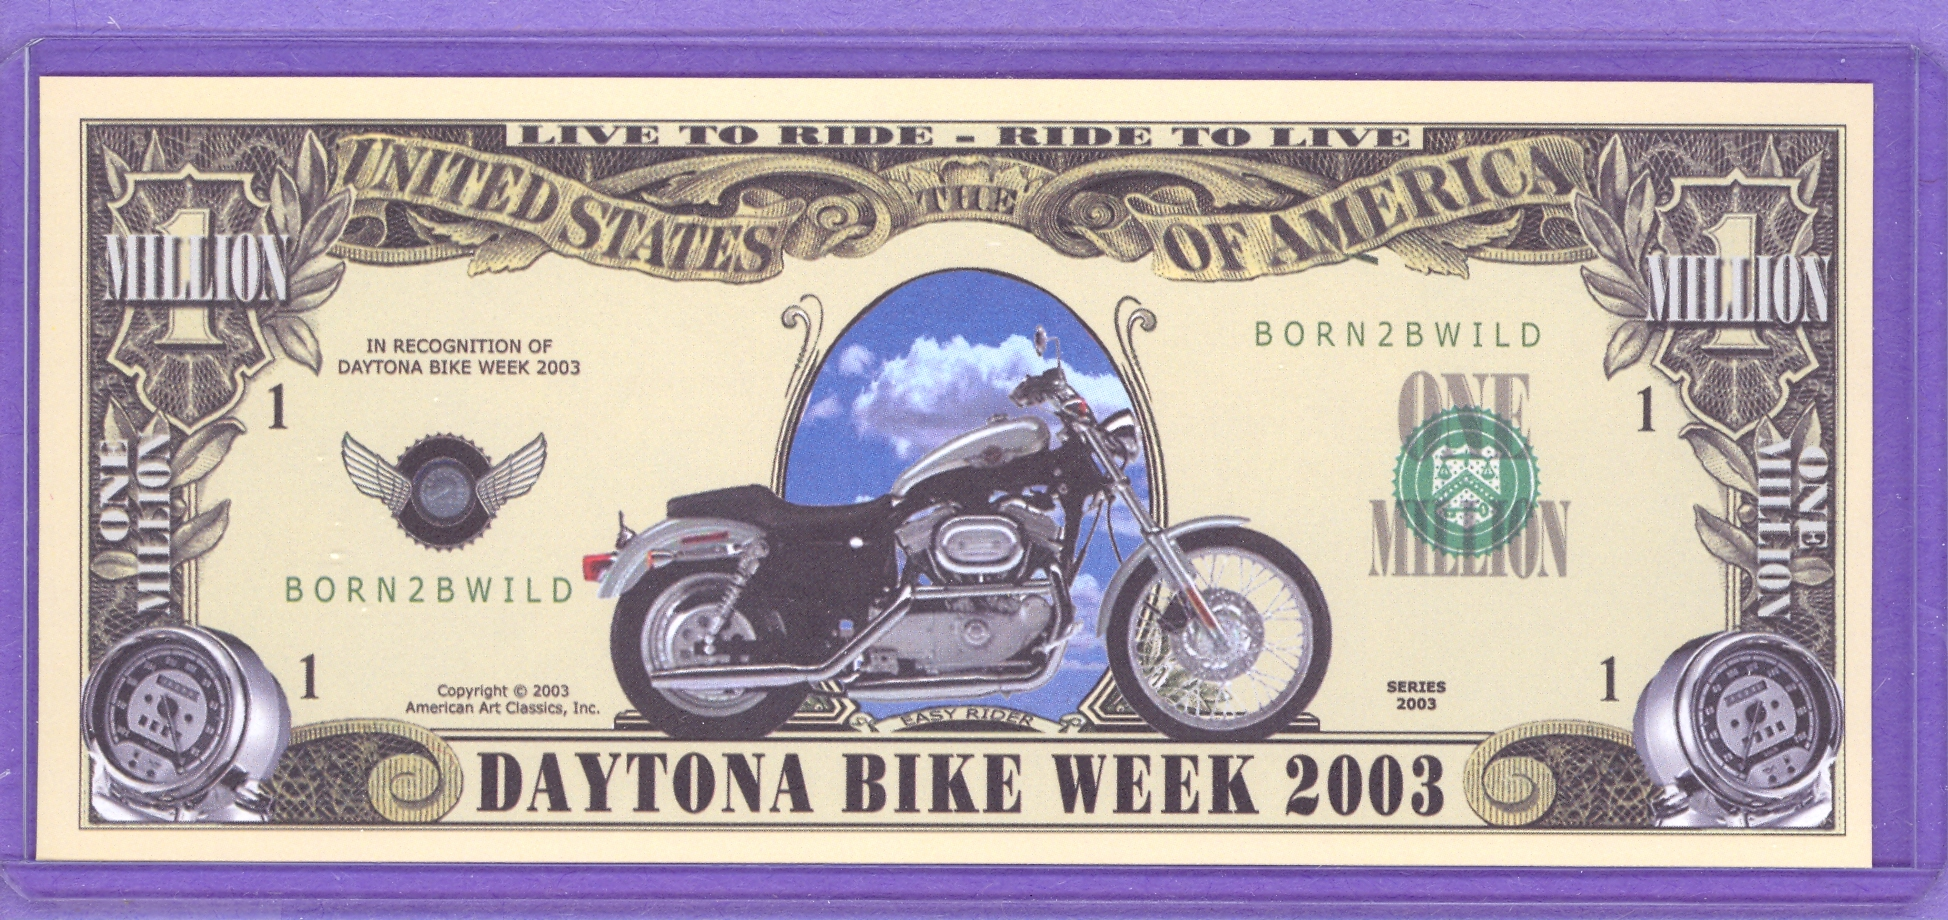 2003 Daytona Bike Week Fantasy $1,000,000 note